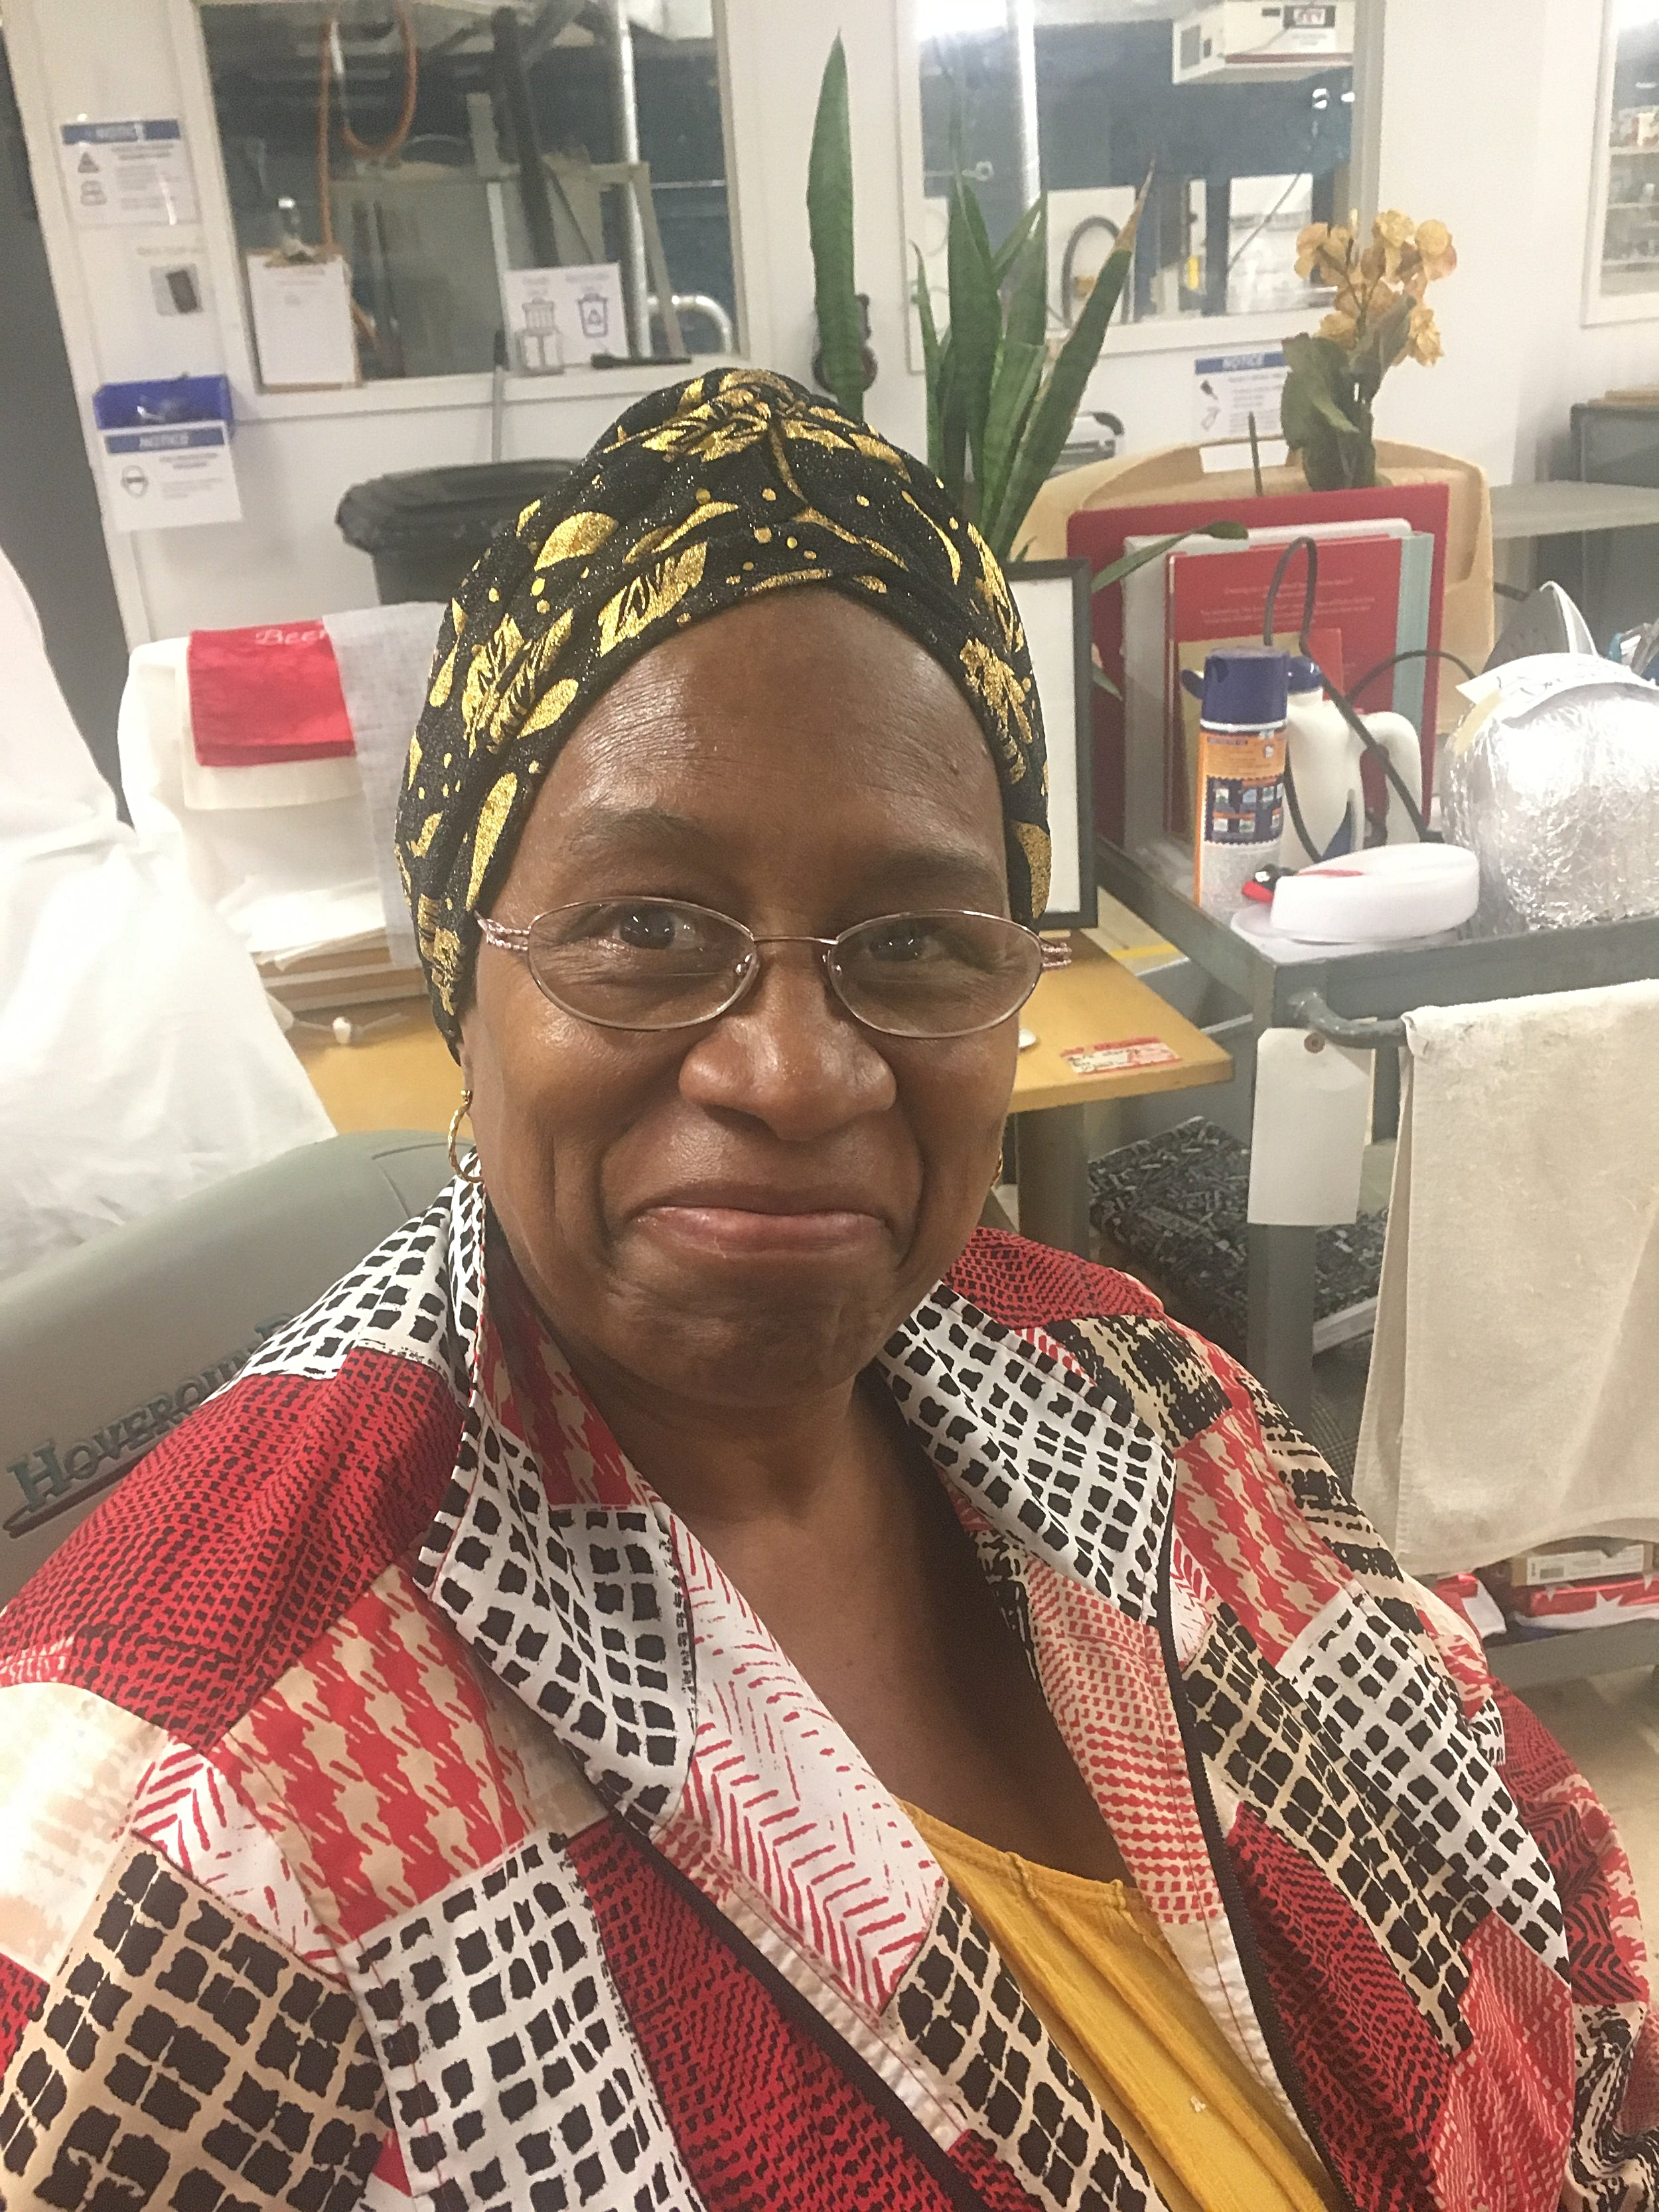 Linda Bolden: a Creative Writer of inspirational stories and poetry, Crochet Instructor, and a Seamstress, Linda is soft spoken and strong with a heart for healing women over traumatic situations.